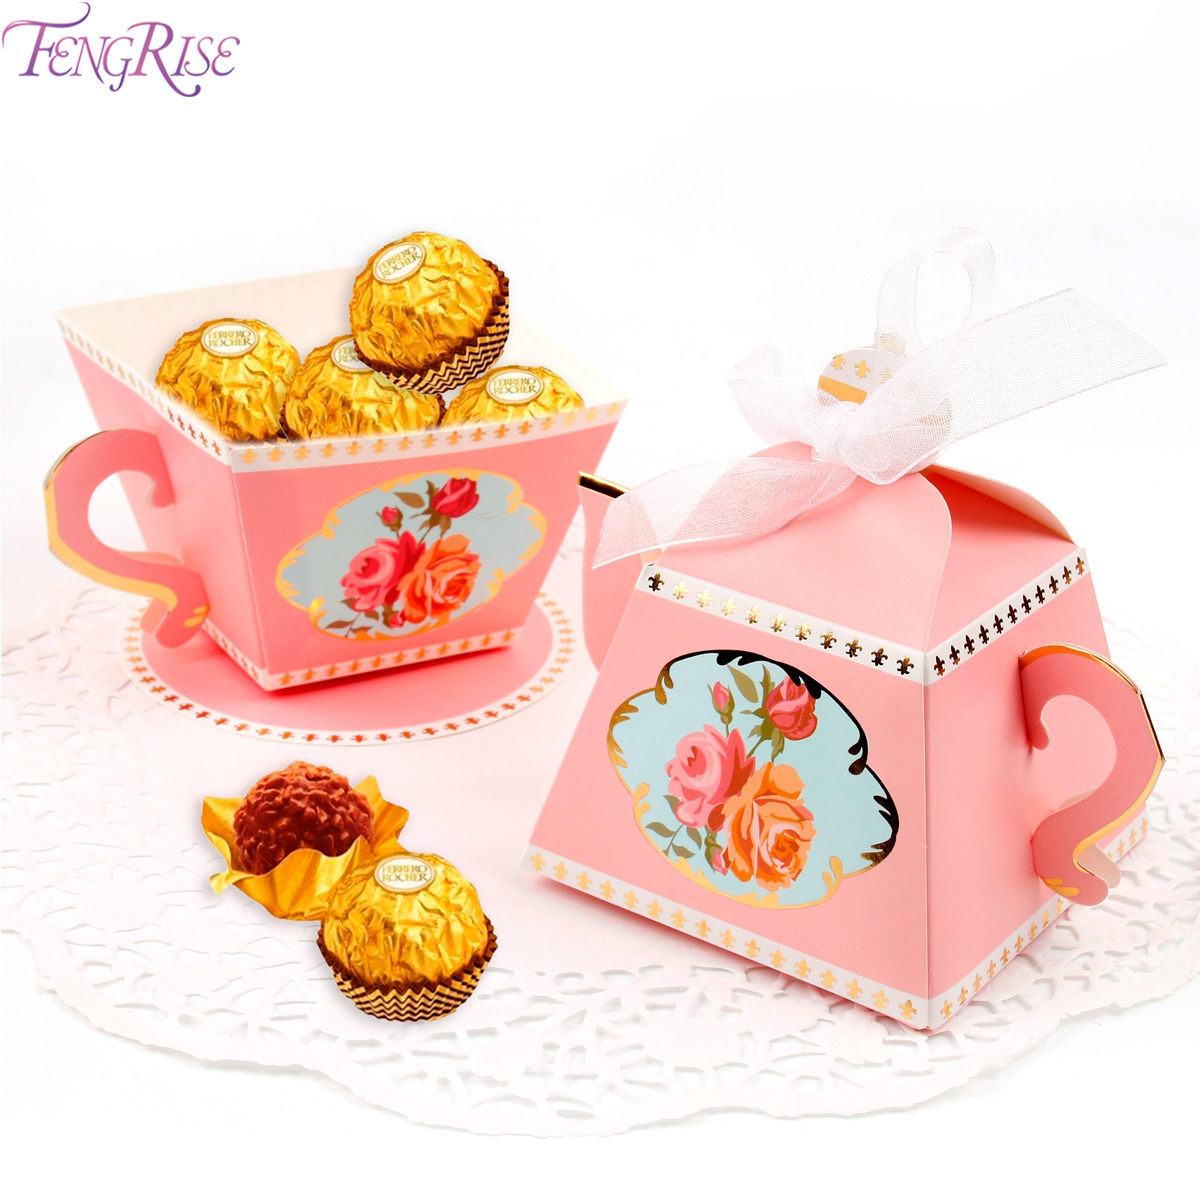 FENGRISE 40pcs Animal Candy Box Baby Girl Boy Party Favors Wedding ...